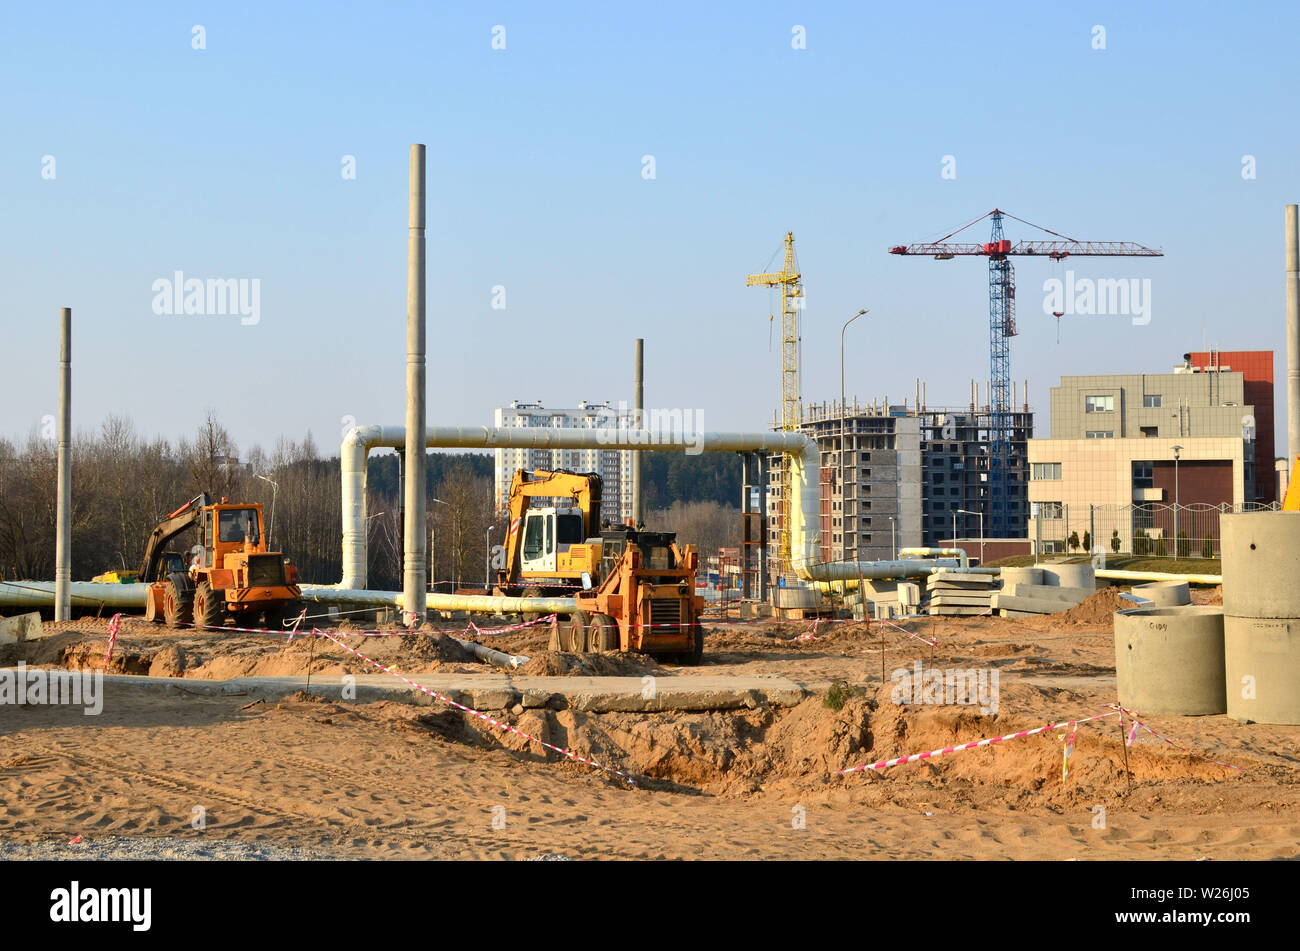 Heavy construction equipment and earthmoving excavators working on a construction site in the city. Laying or replacement of underground storm sewer p - Stock Image